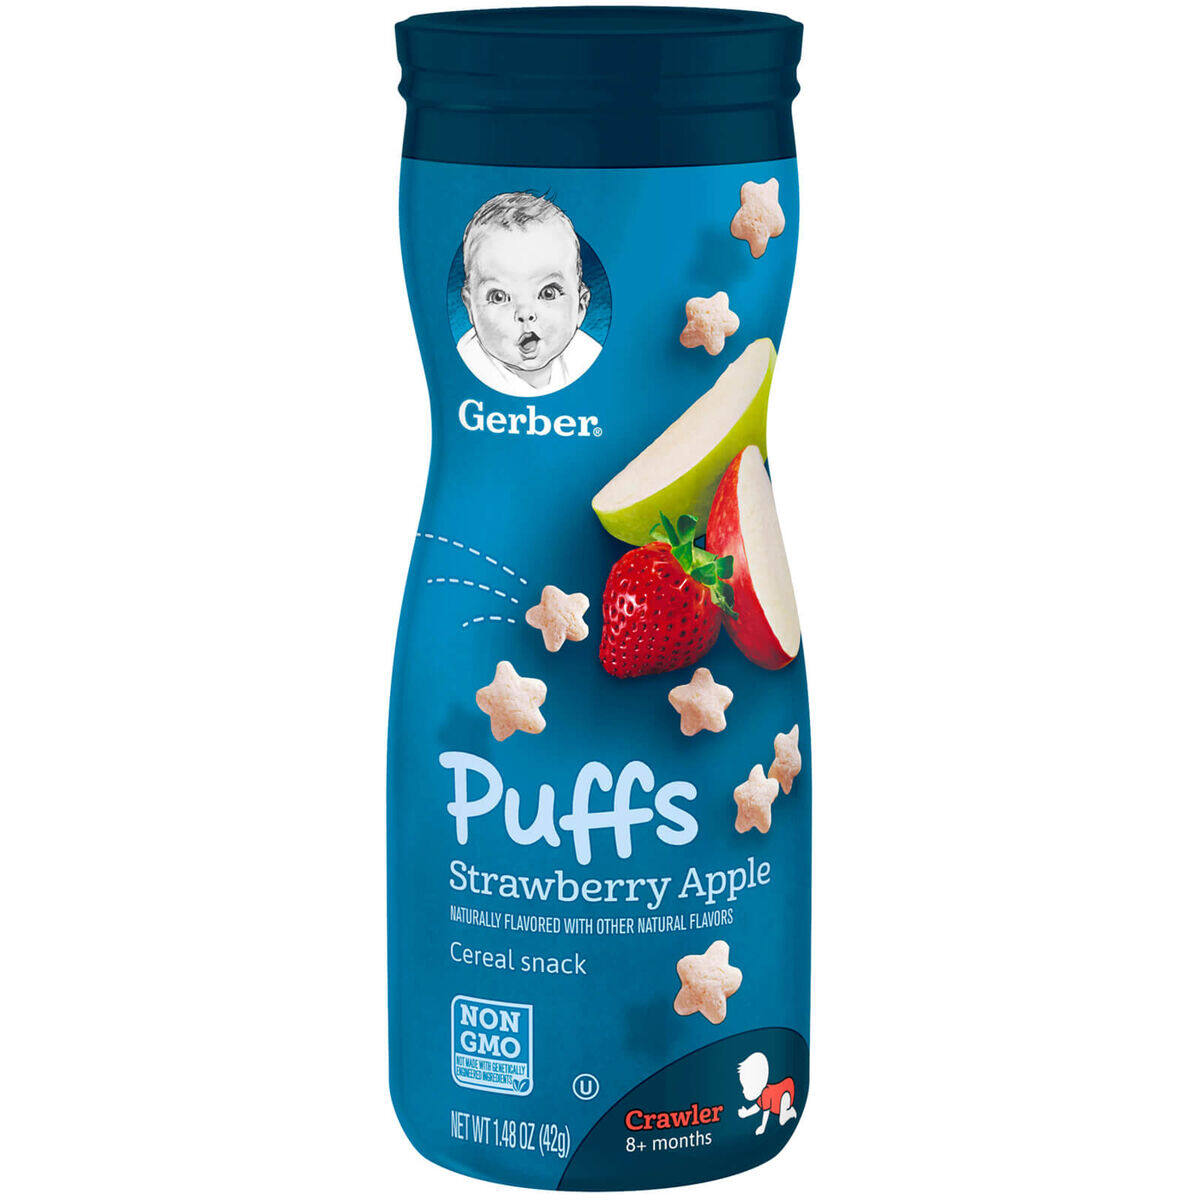 Gerber Puffs Cereal Snack Strawberry Apple 42g / 1.48 OZ